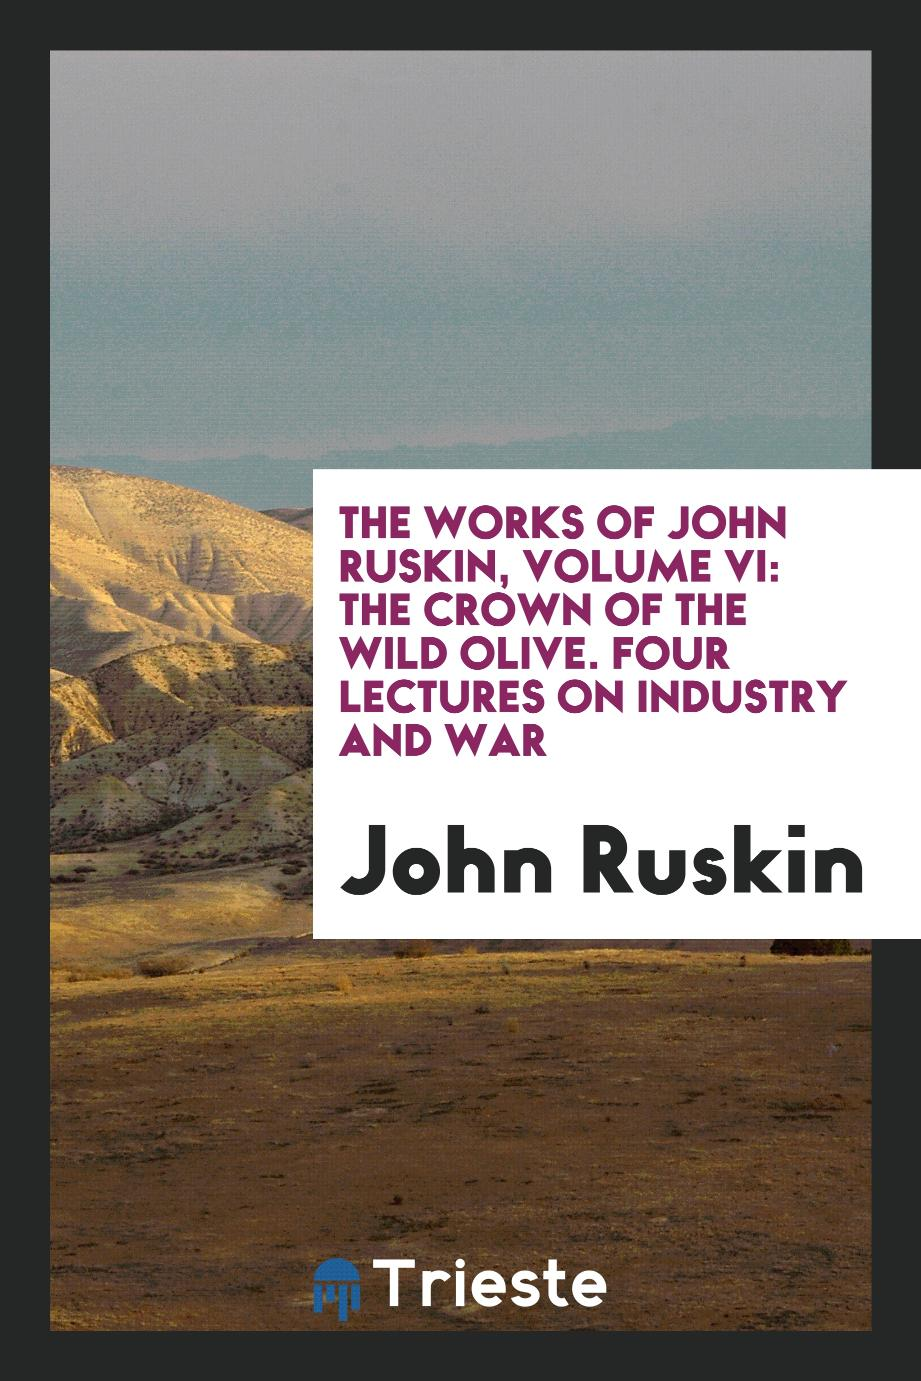 The Works of John Ruskin, Volume VI: The Crown of the Wild Olive. Four Lectures on Industry and War